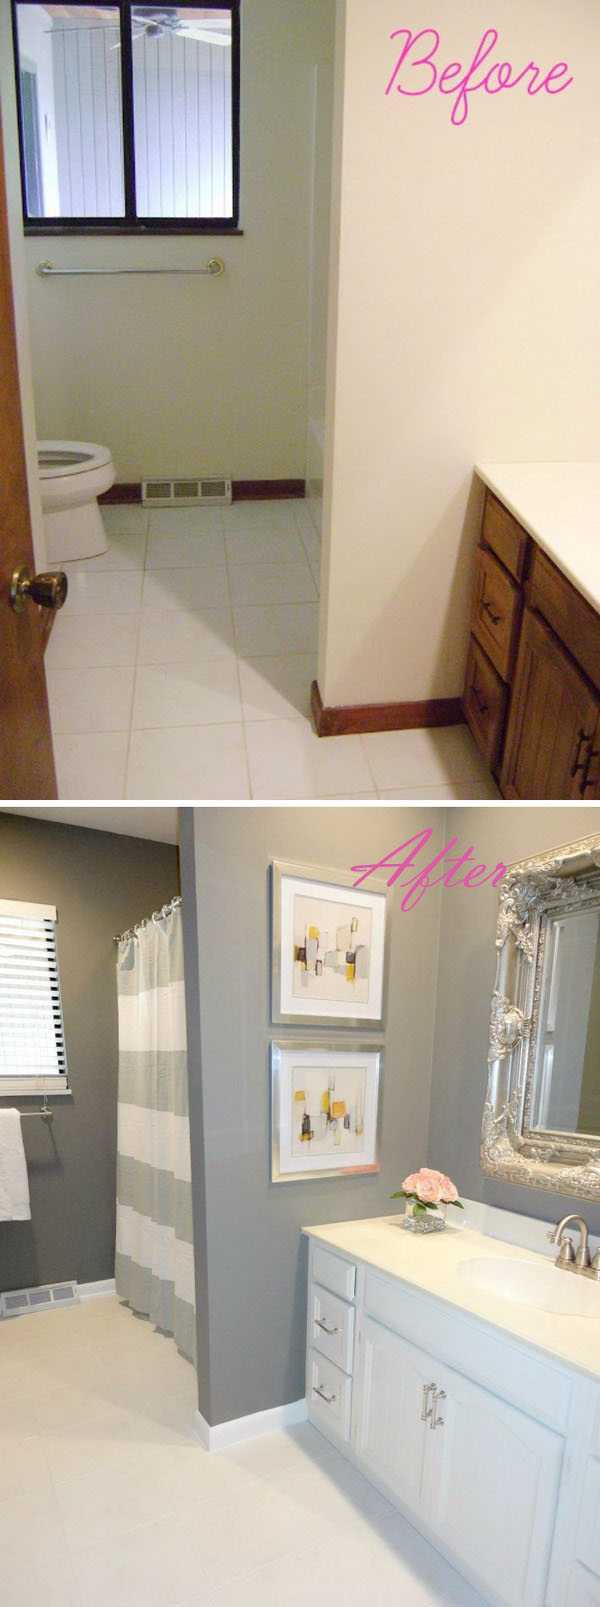 Before and after 20 awesome bathroom makeovers hative for Diy bathroom ideas on a budget